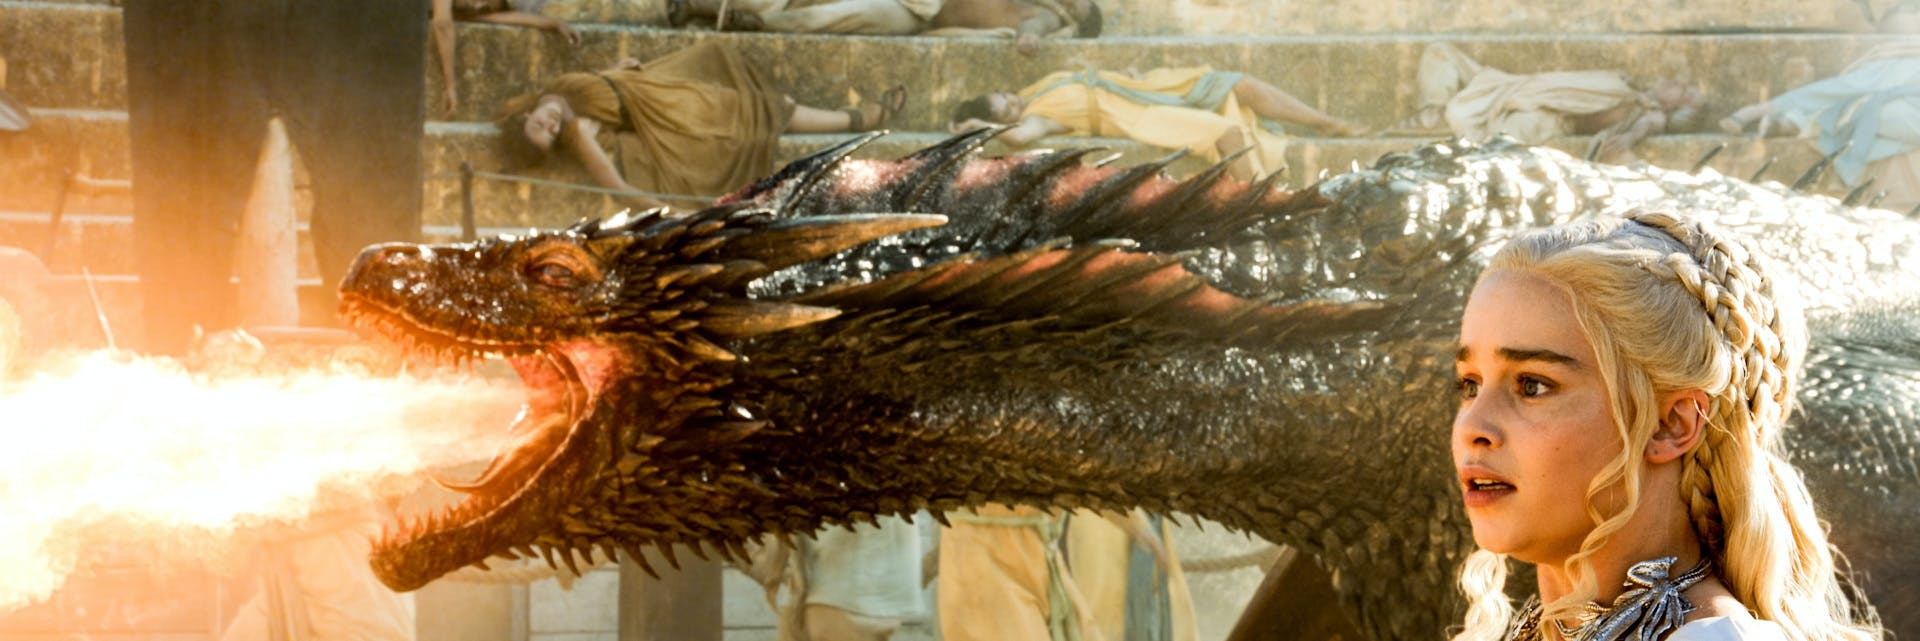 Daenery's dragons will be huge in 'Game of Thrones' Season 7